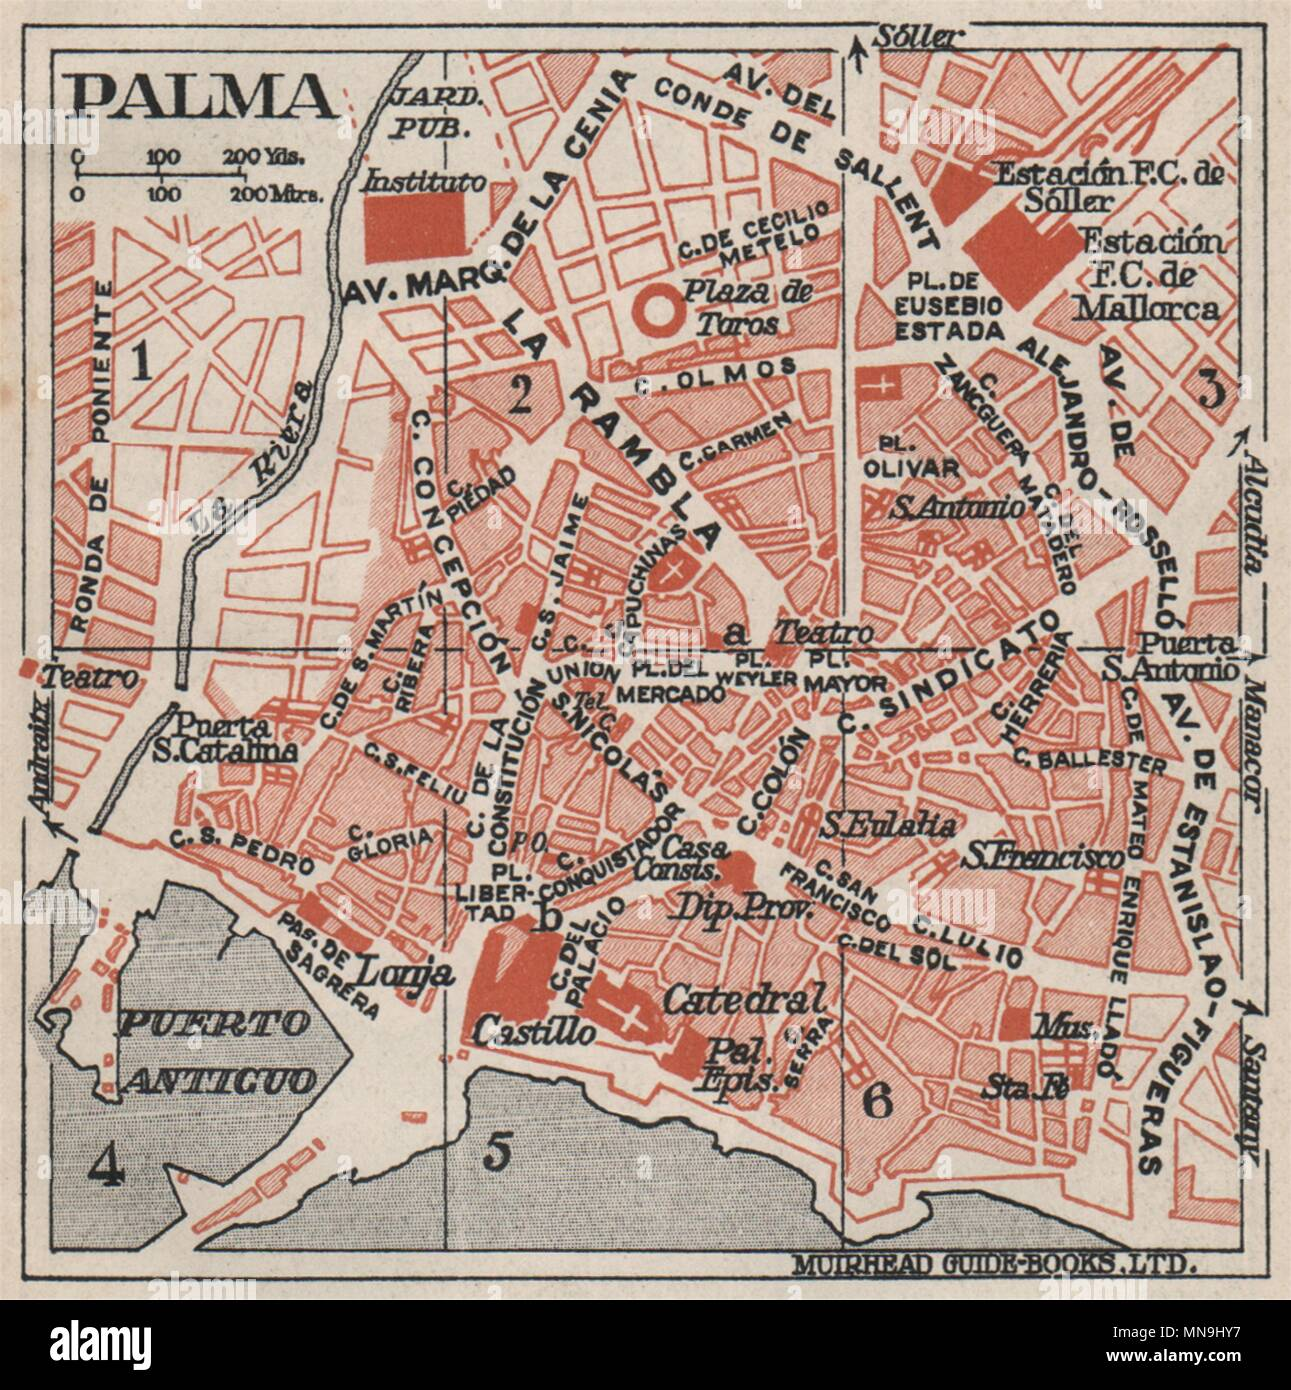 Map Of Spain Majorca.Palma De Mallorca Vintage Town City Map Plan Spain Majorca 1930